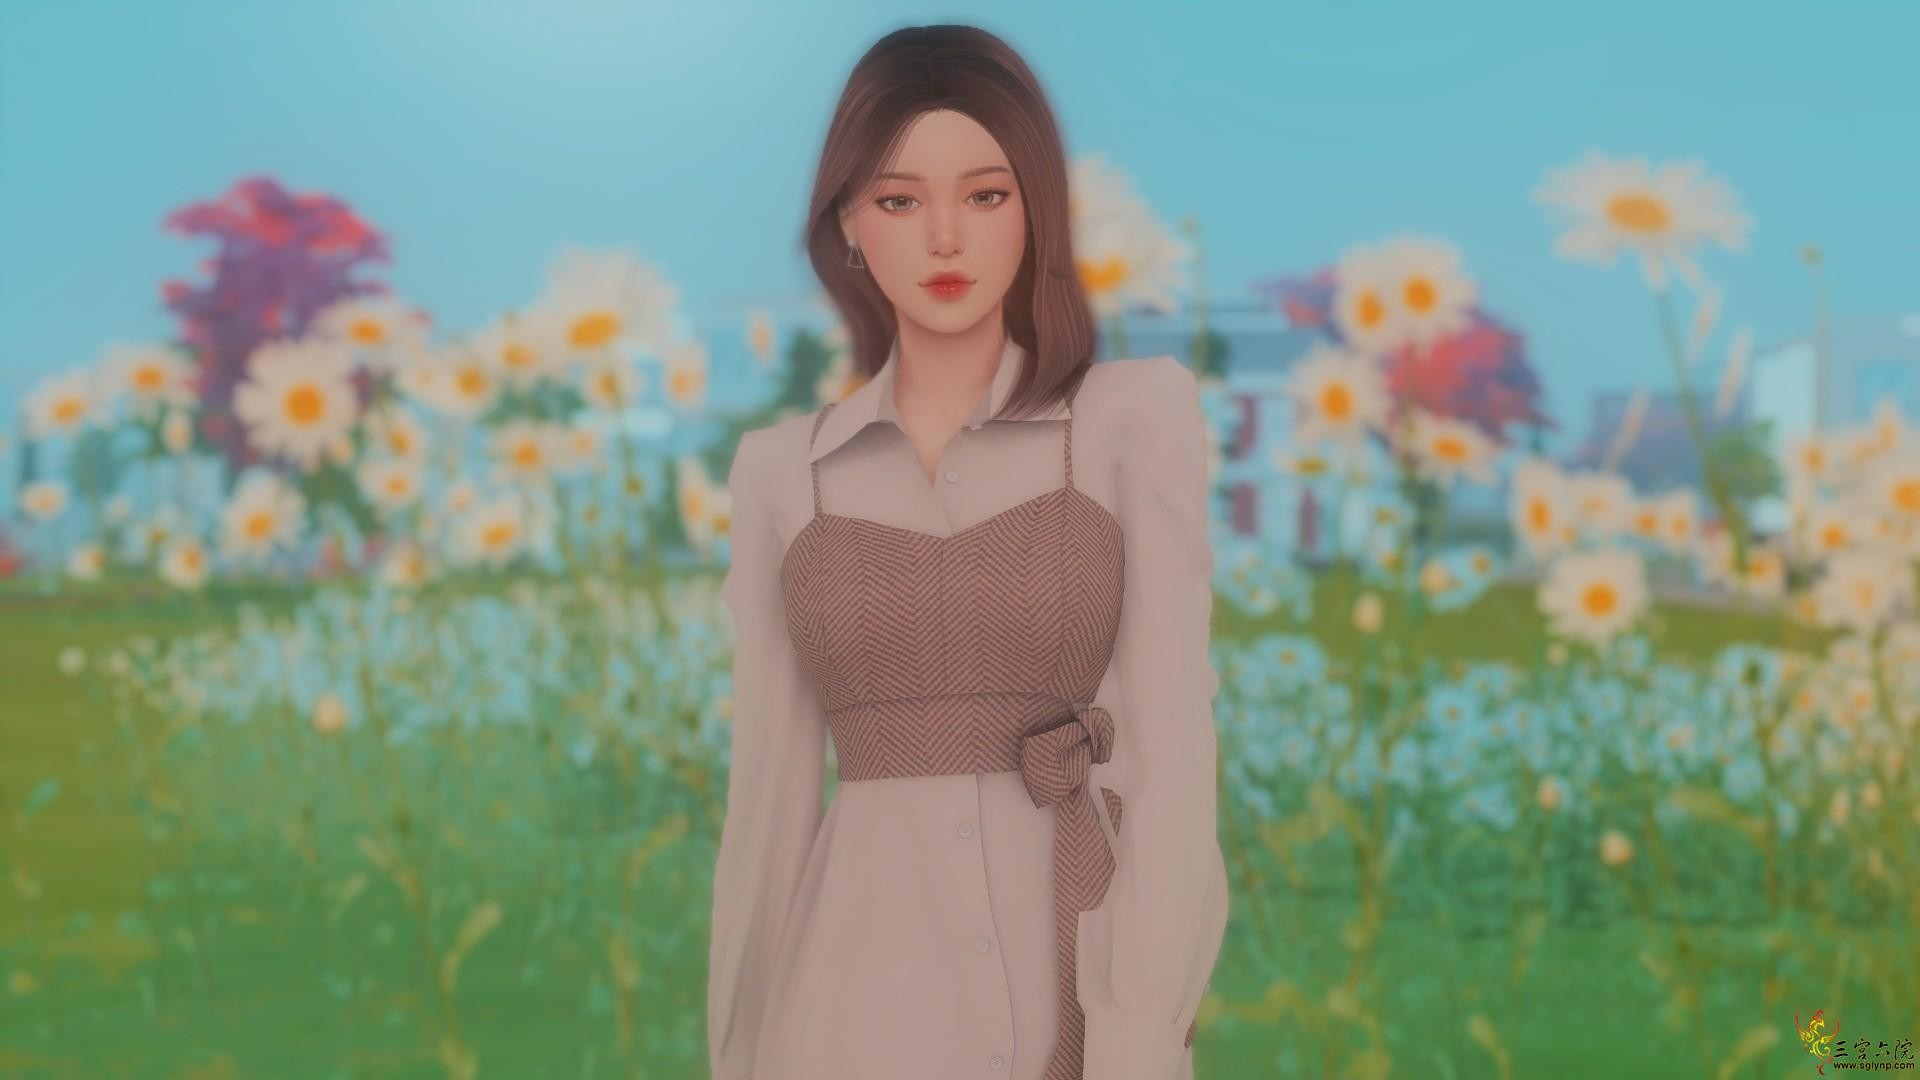 TS4_x64 2021-03-17 22-03-54_副本.png